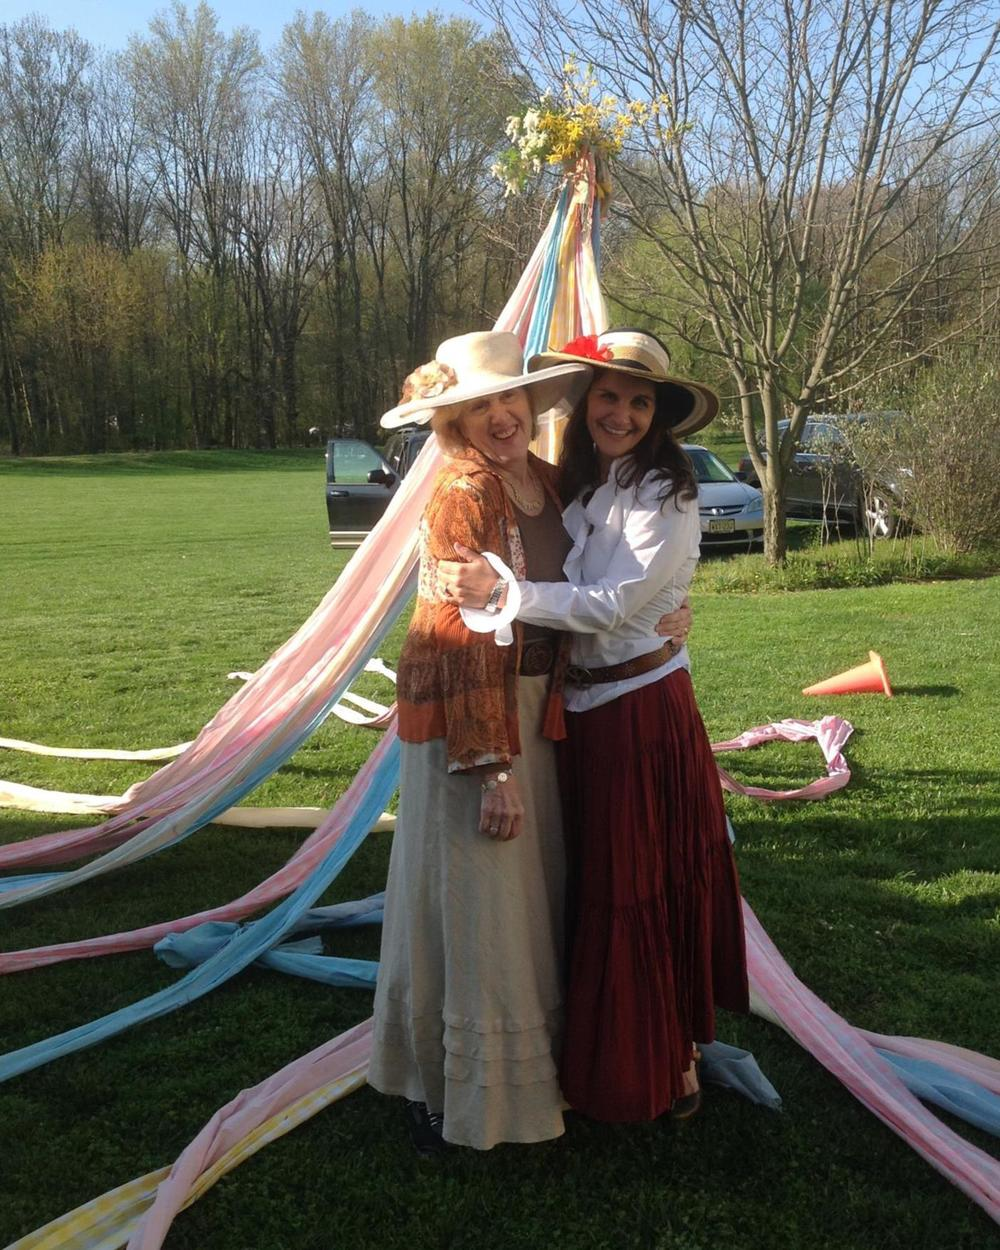 Co-founder, Juliana McIntyre Fenn, and Silvana Clark prepare to dance around the maypole in celebration of Founders' Day